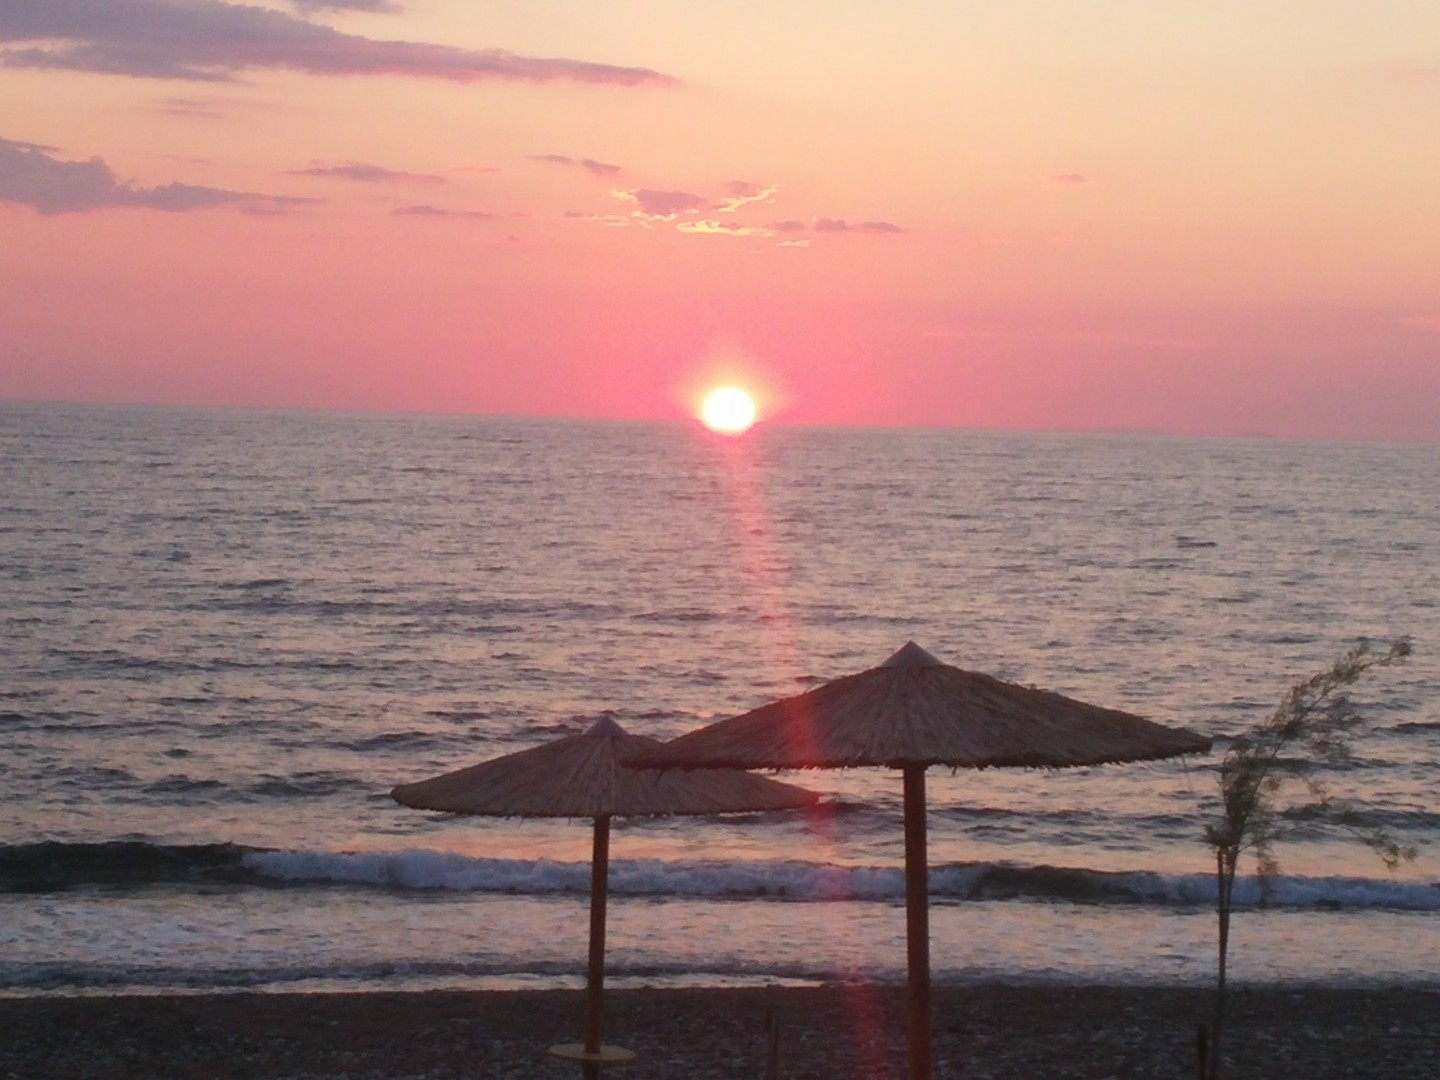 Sunset and beach at Irida Resort Suites